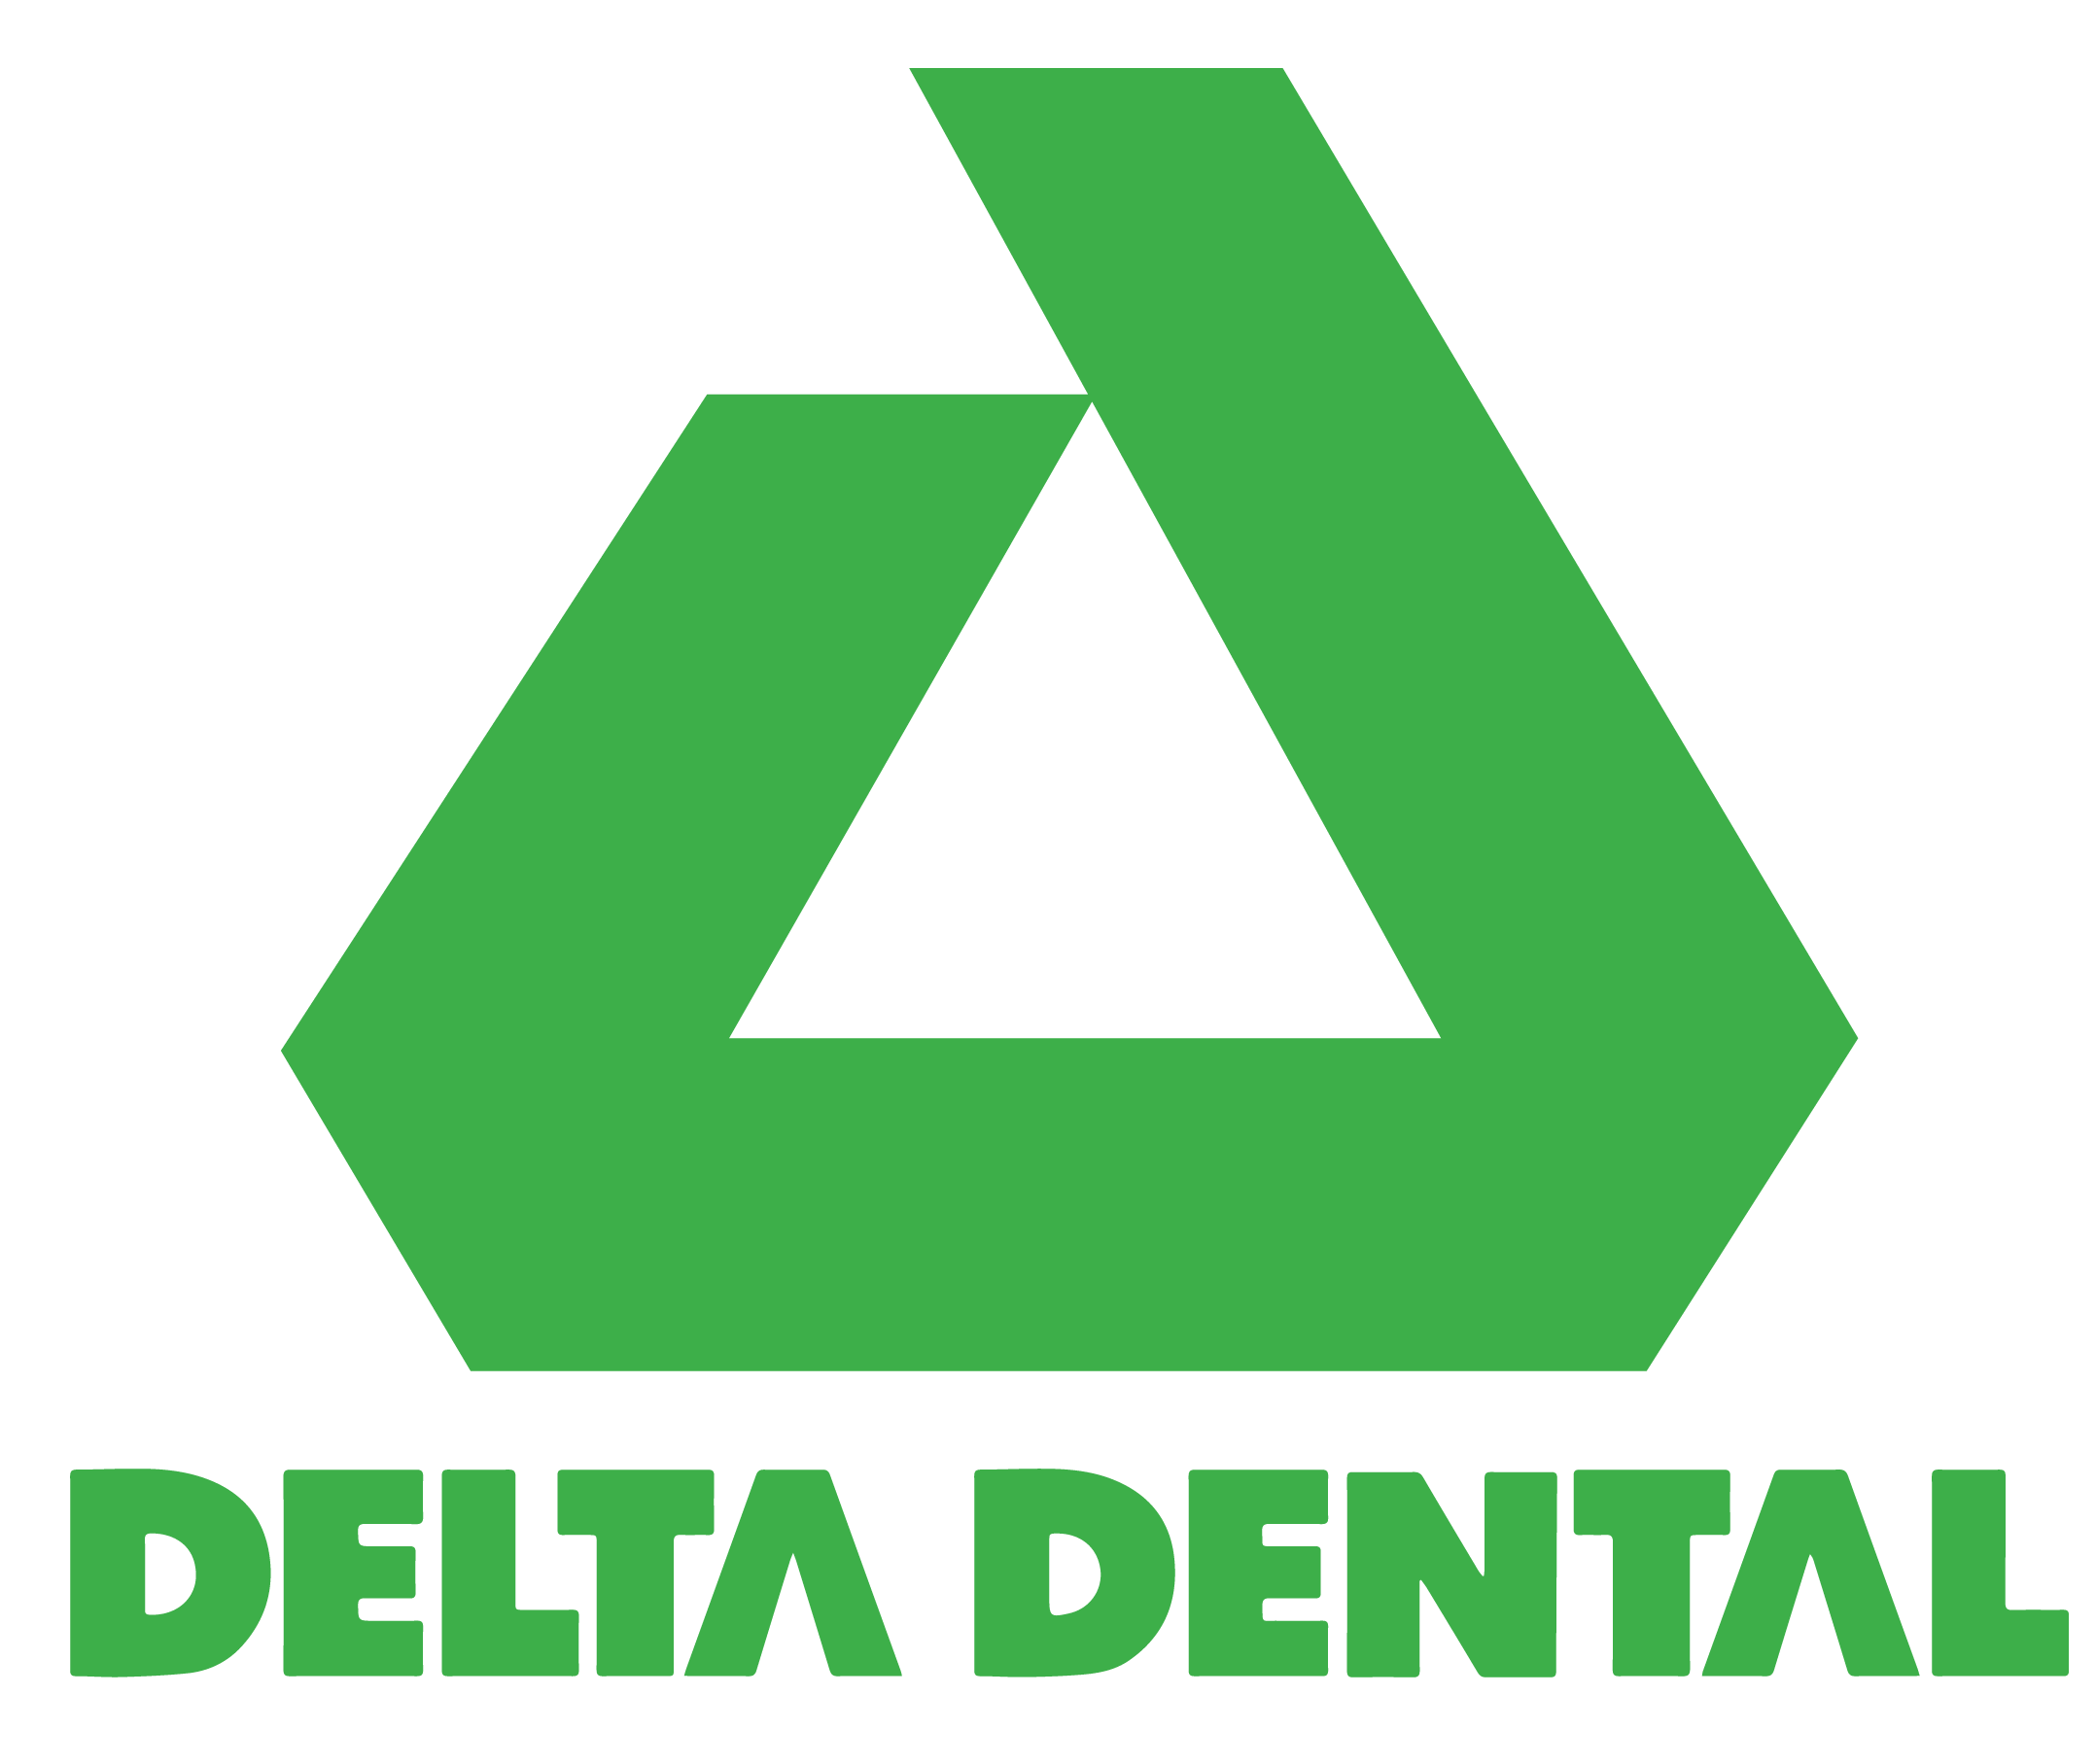 Image result for delta dental clear background